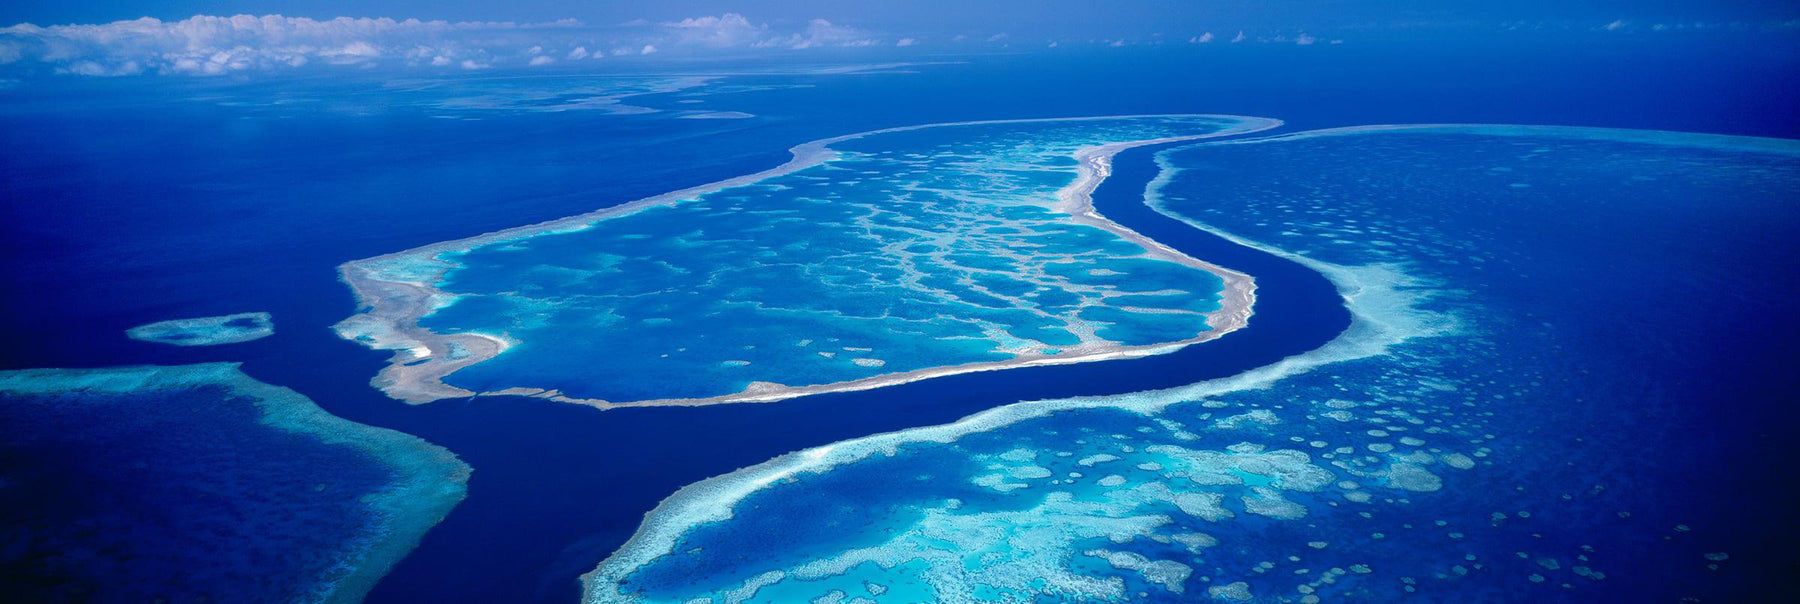 Aerial view of Hardys Lagoon surrounded by the Great Barrier Reef Australia